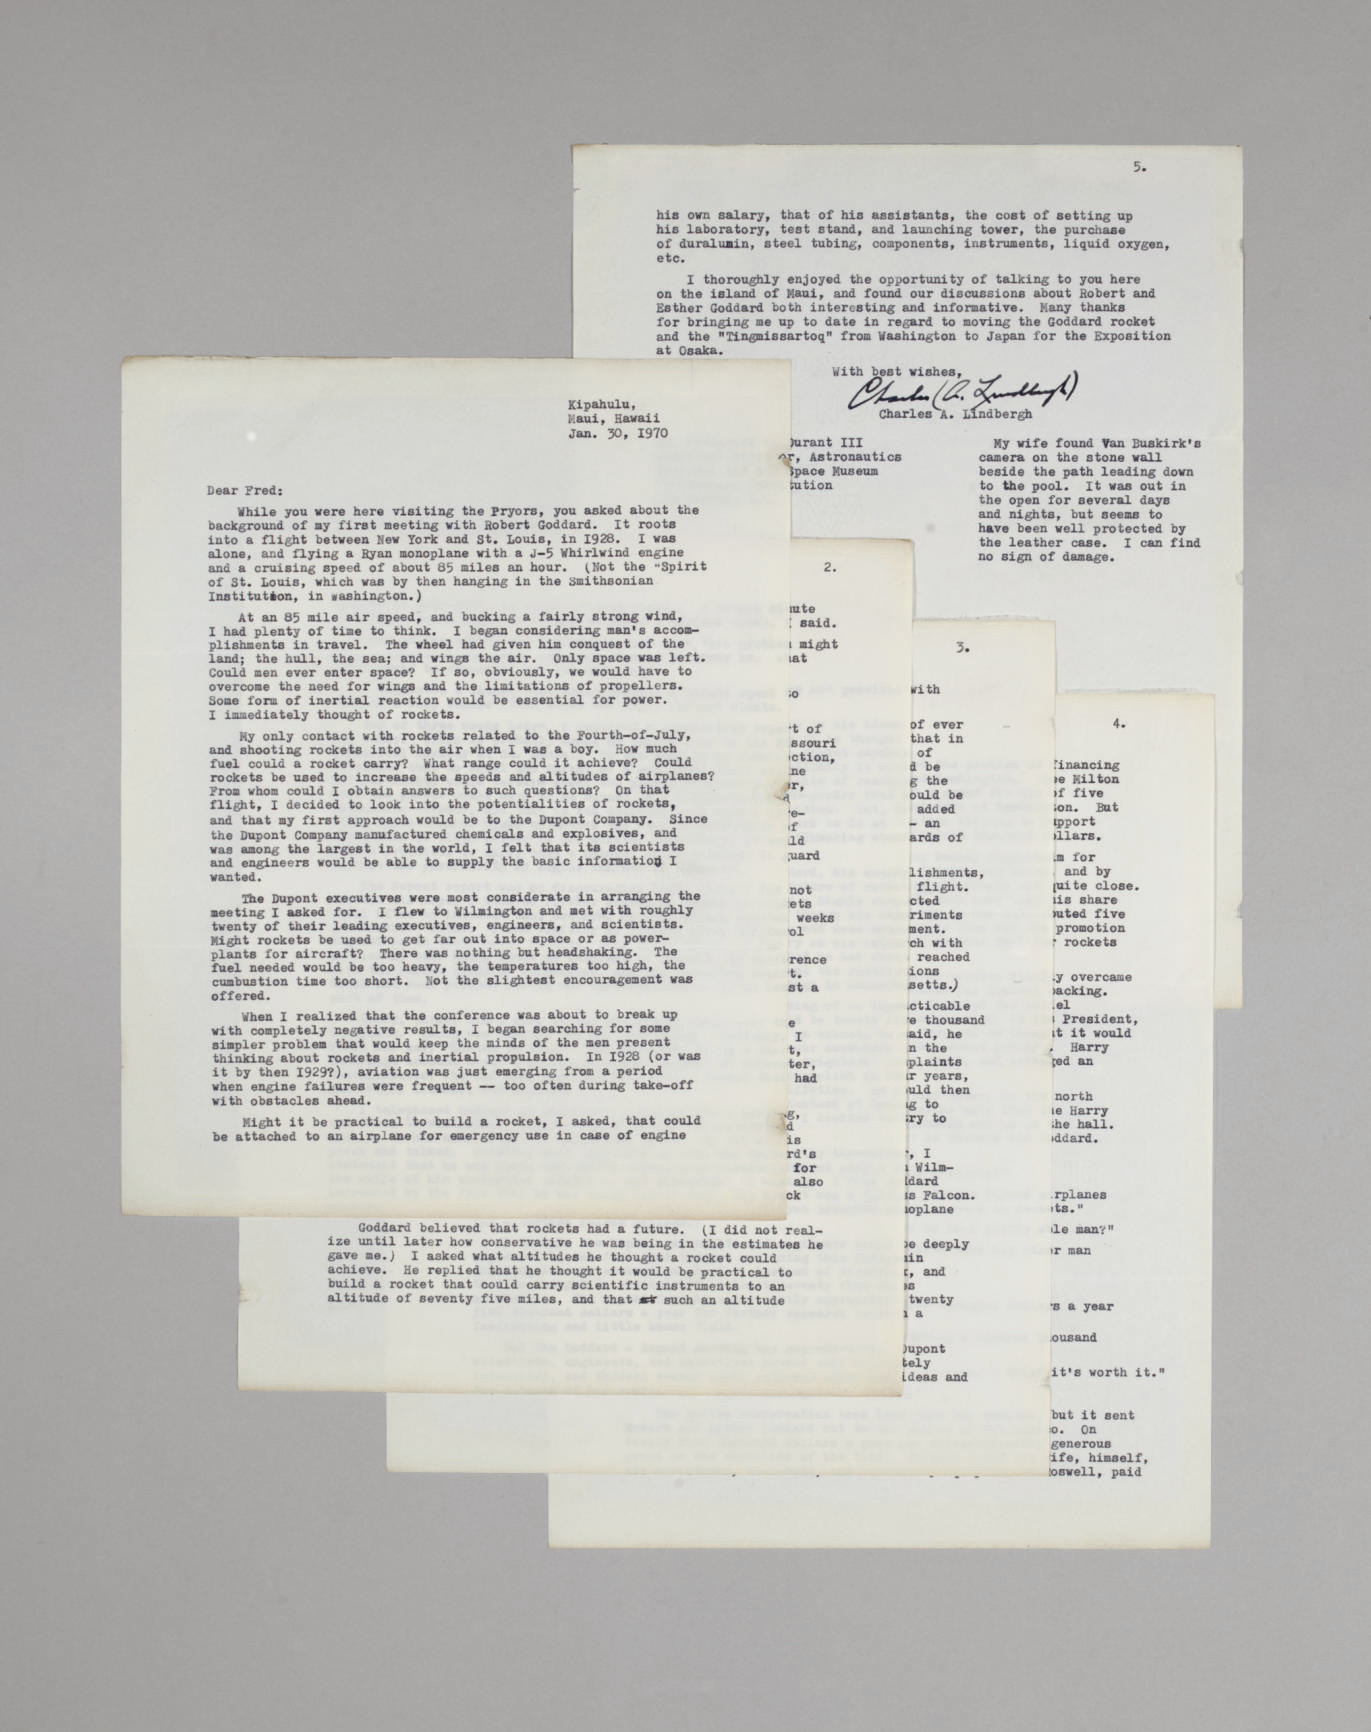 LINDBERGH, Charles A. Typed le